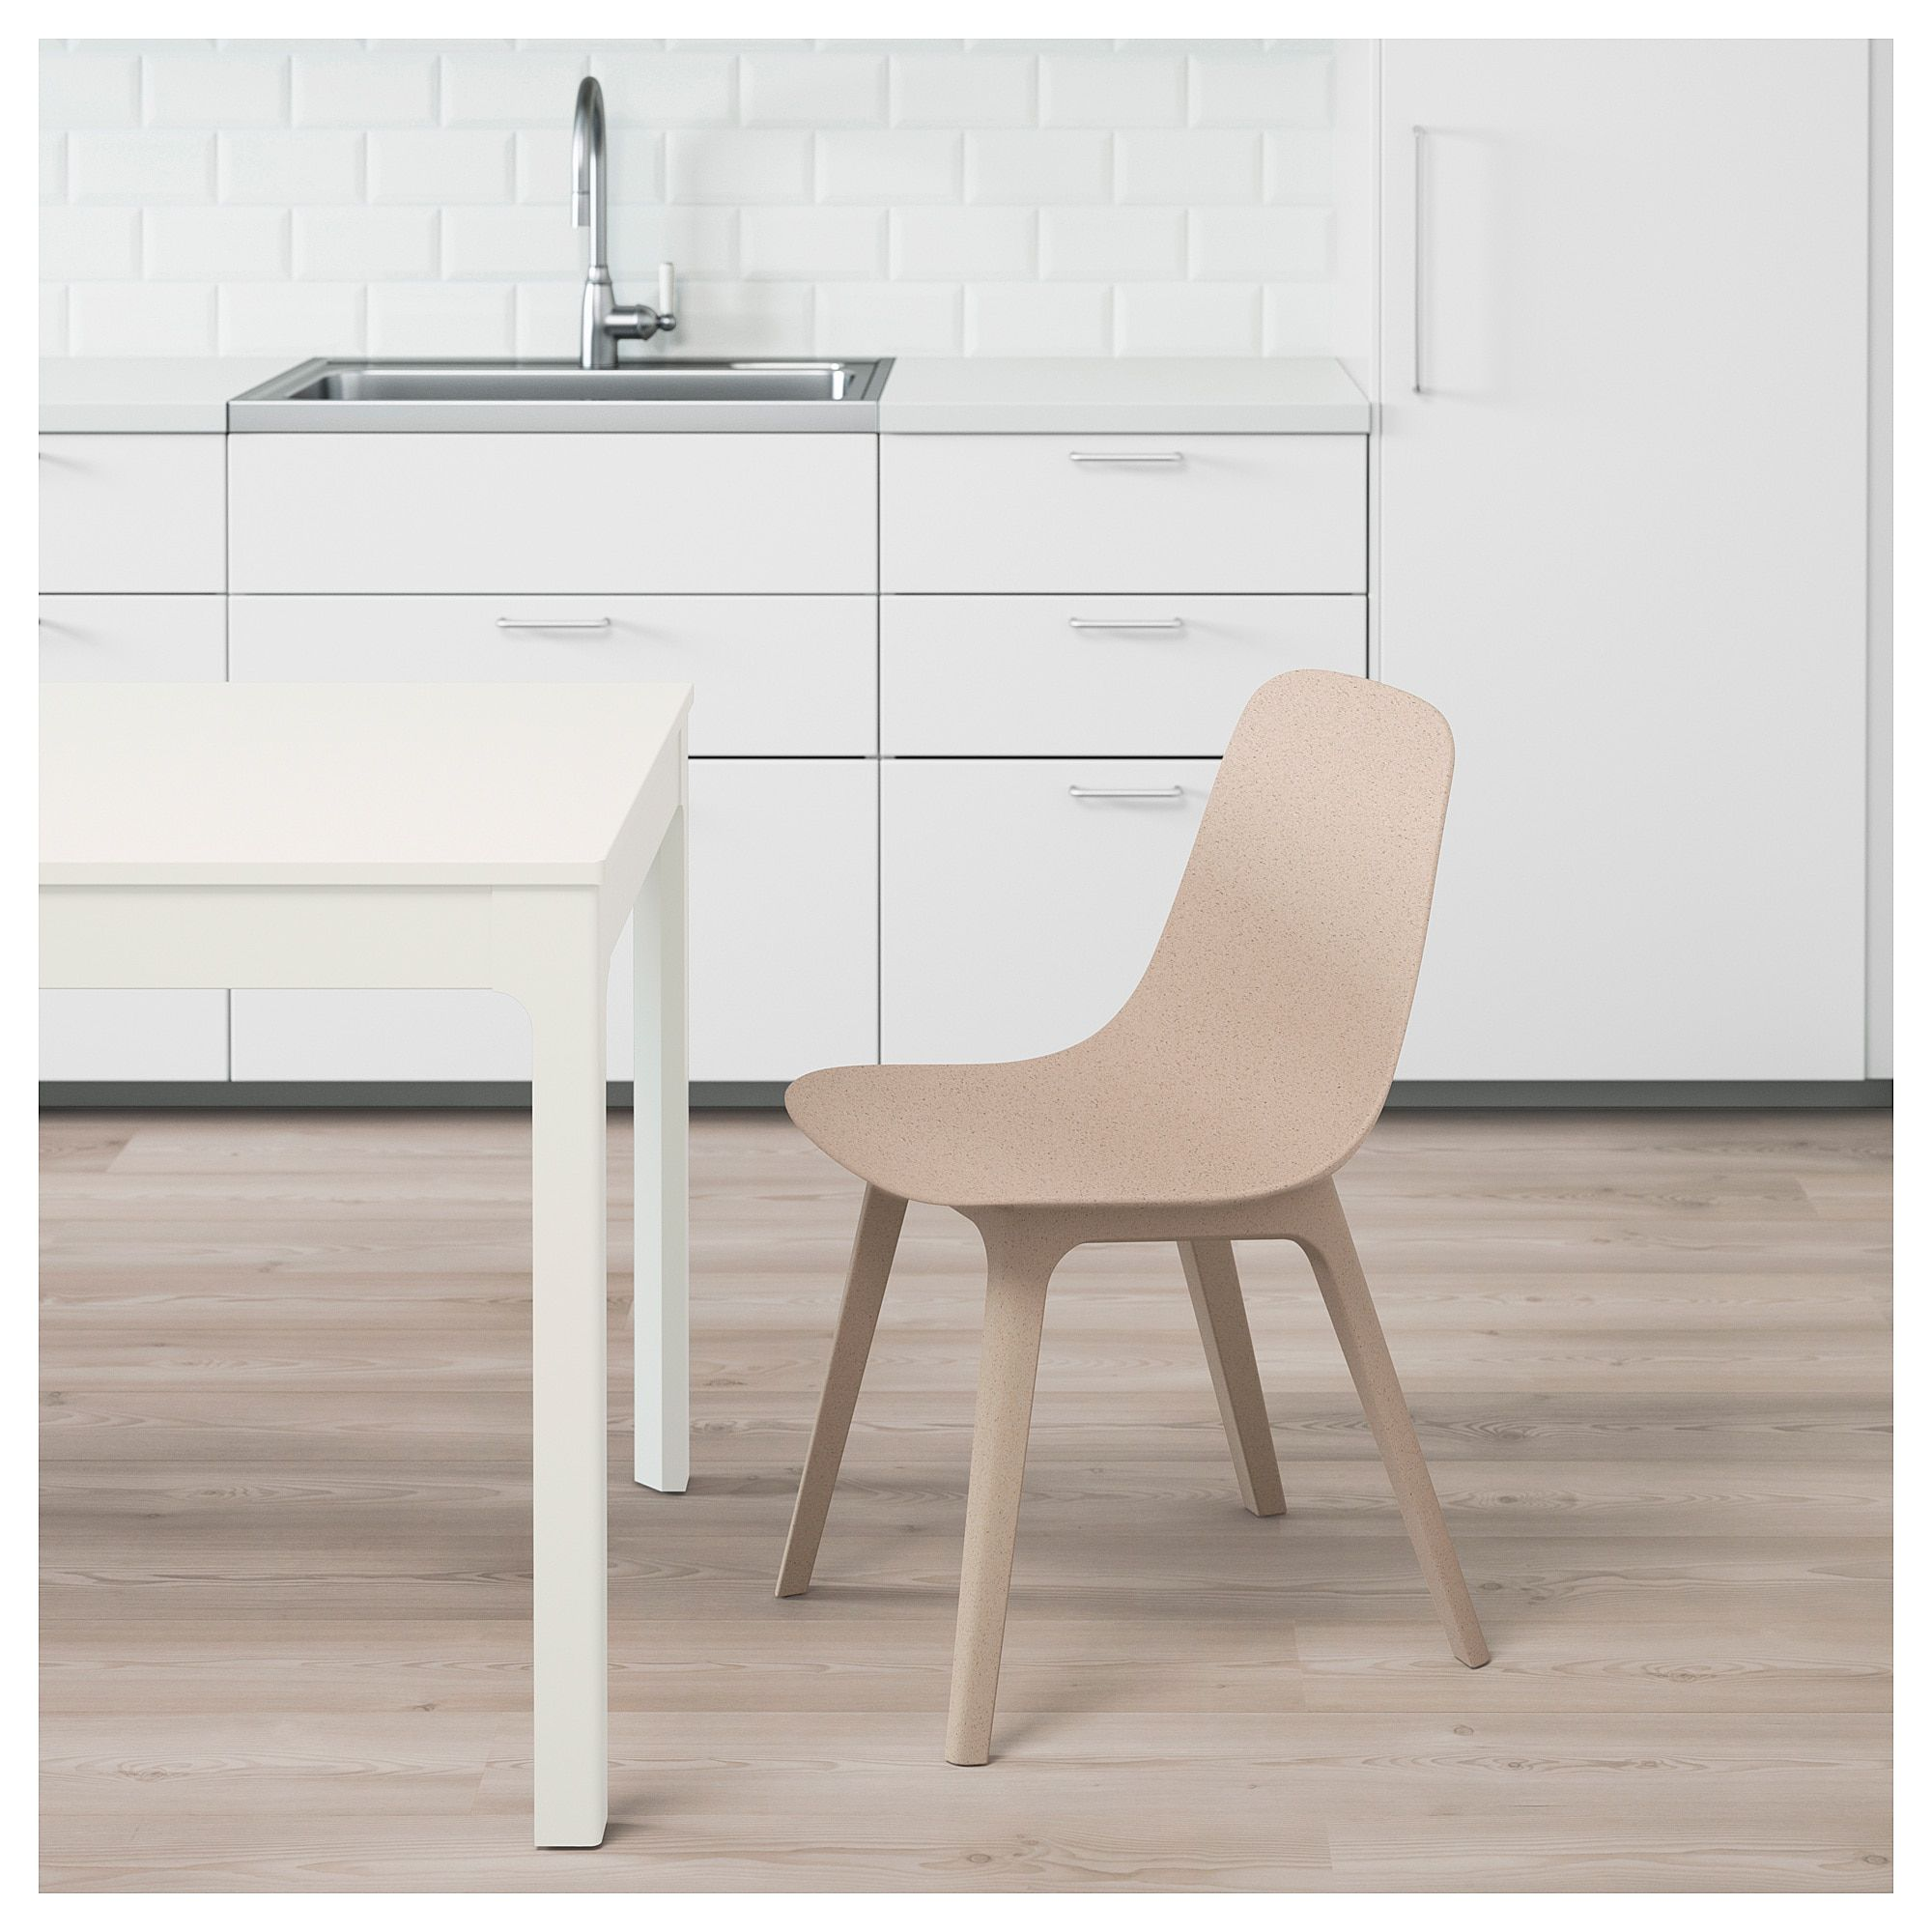 IKEA ODGER White, Beige Chair Dining chairs for sale